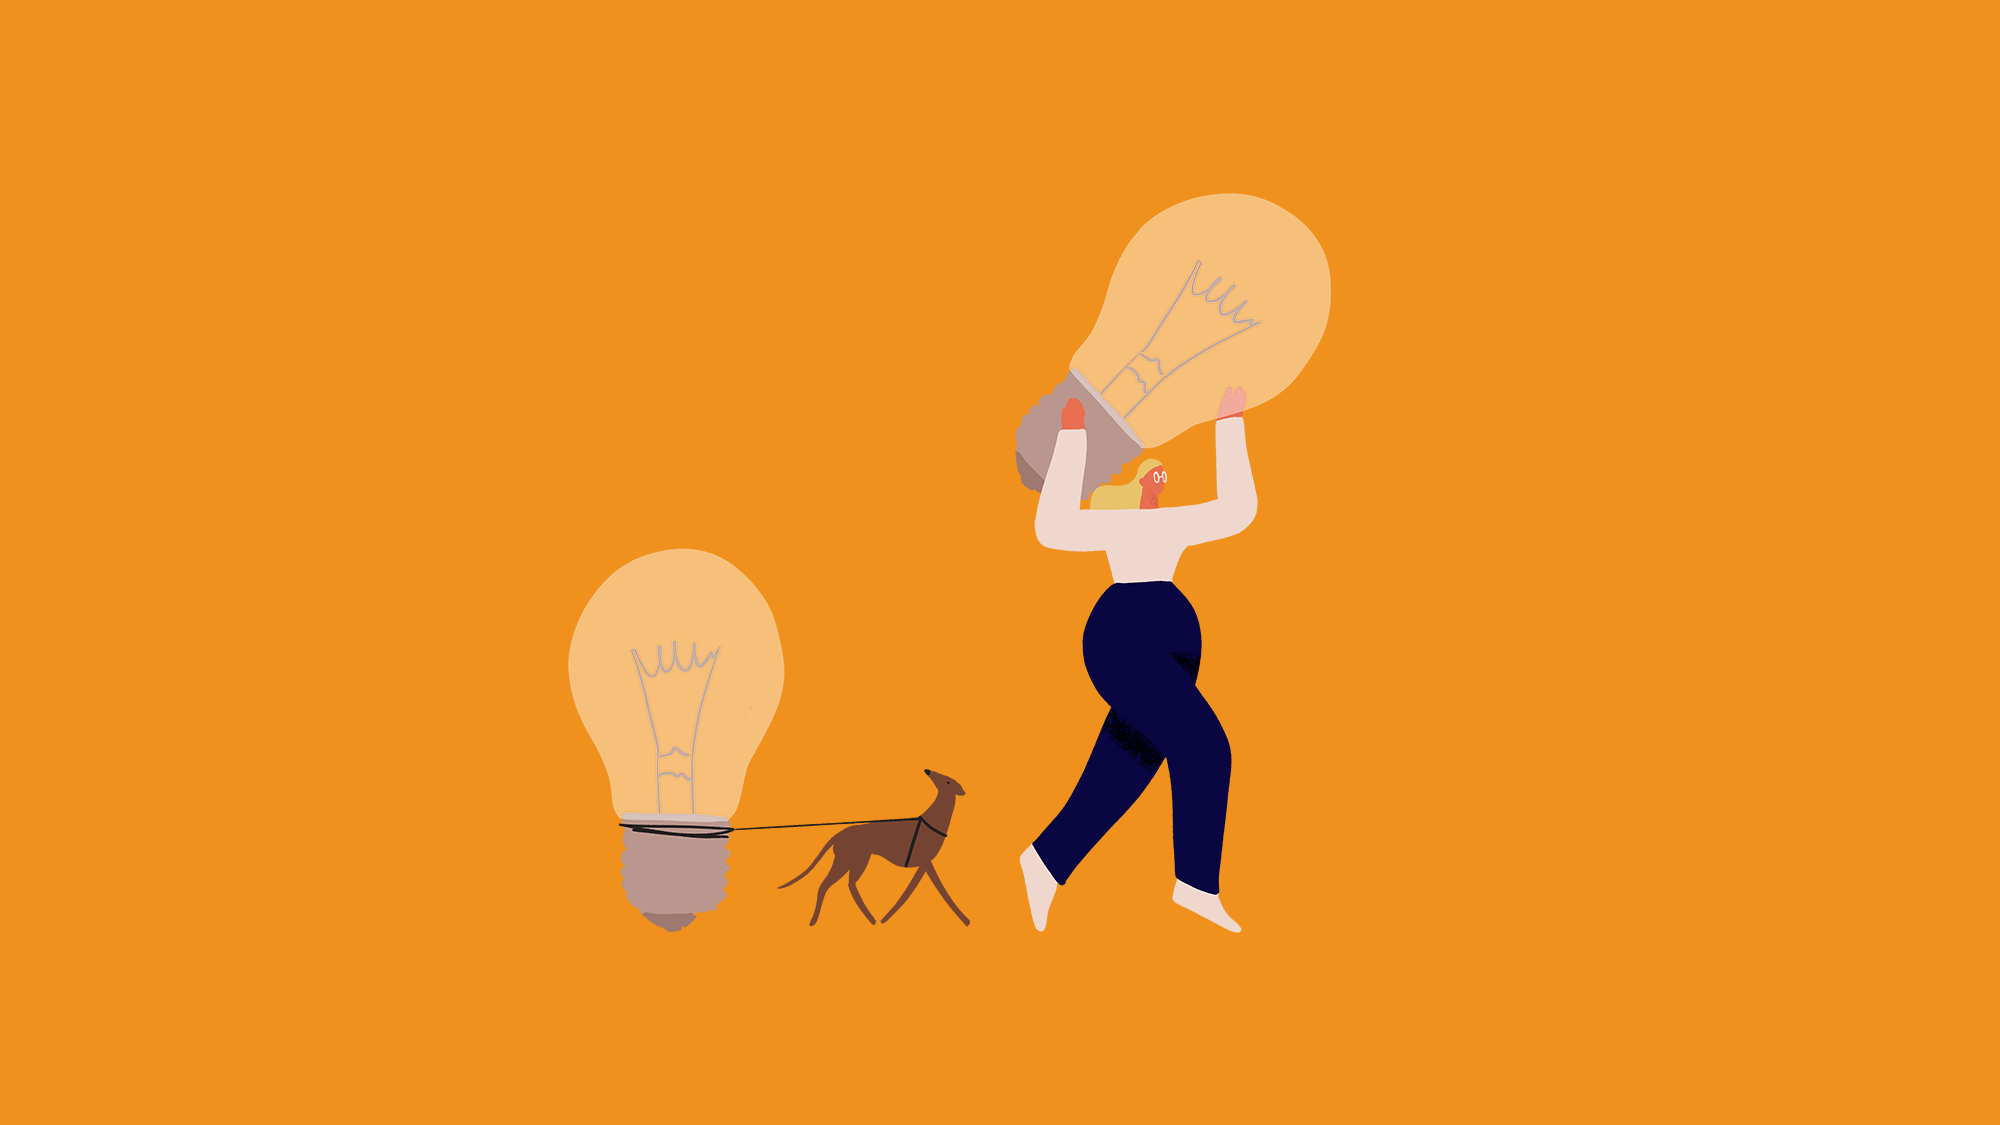 Illustration of a woman and a dog carrying lightbulbs